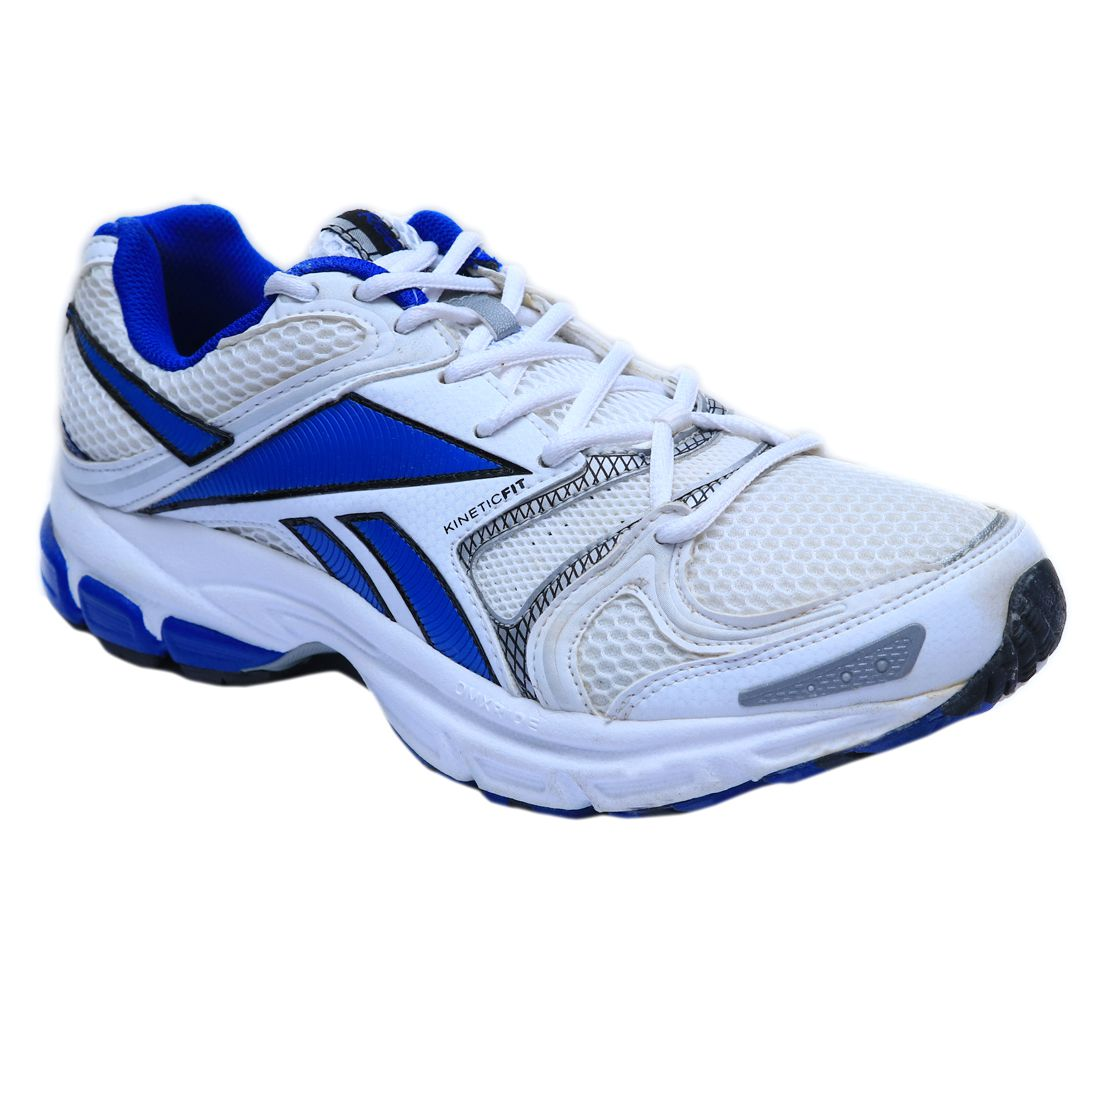 Reebok Prime Select Run Trainer White Running Shoes